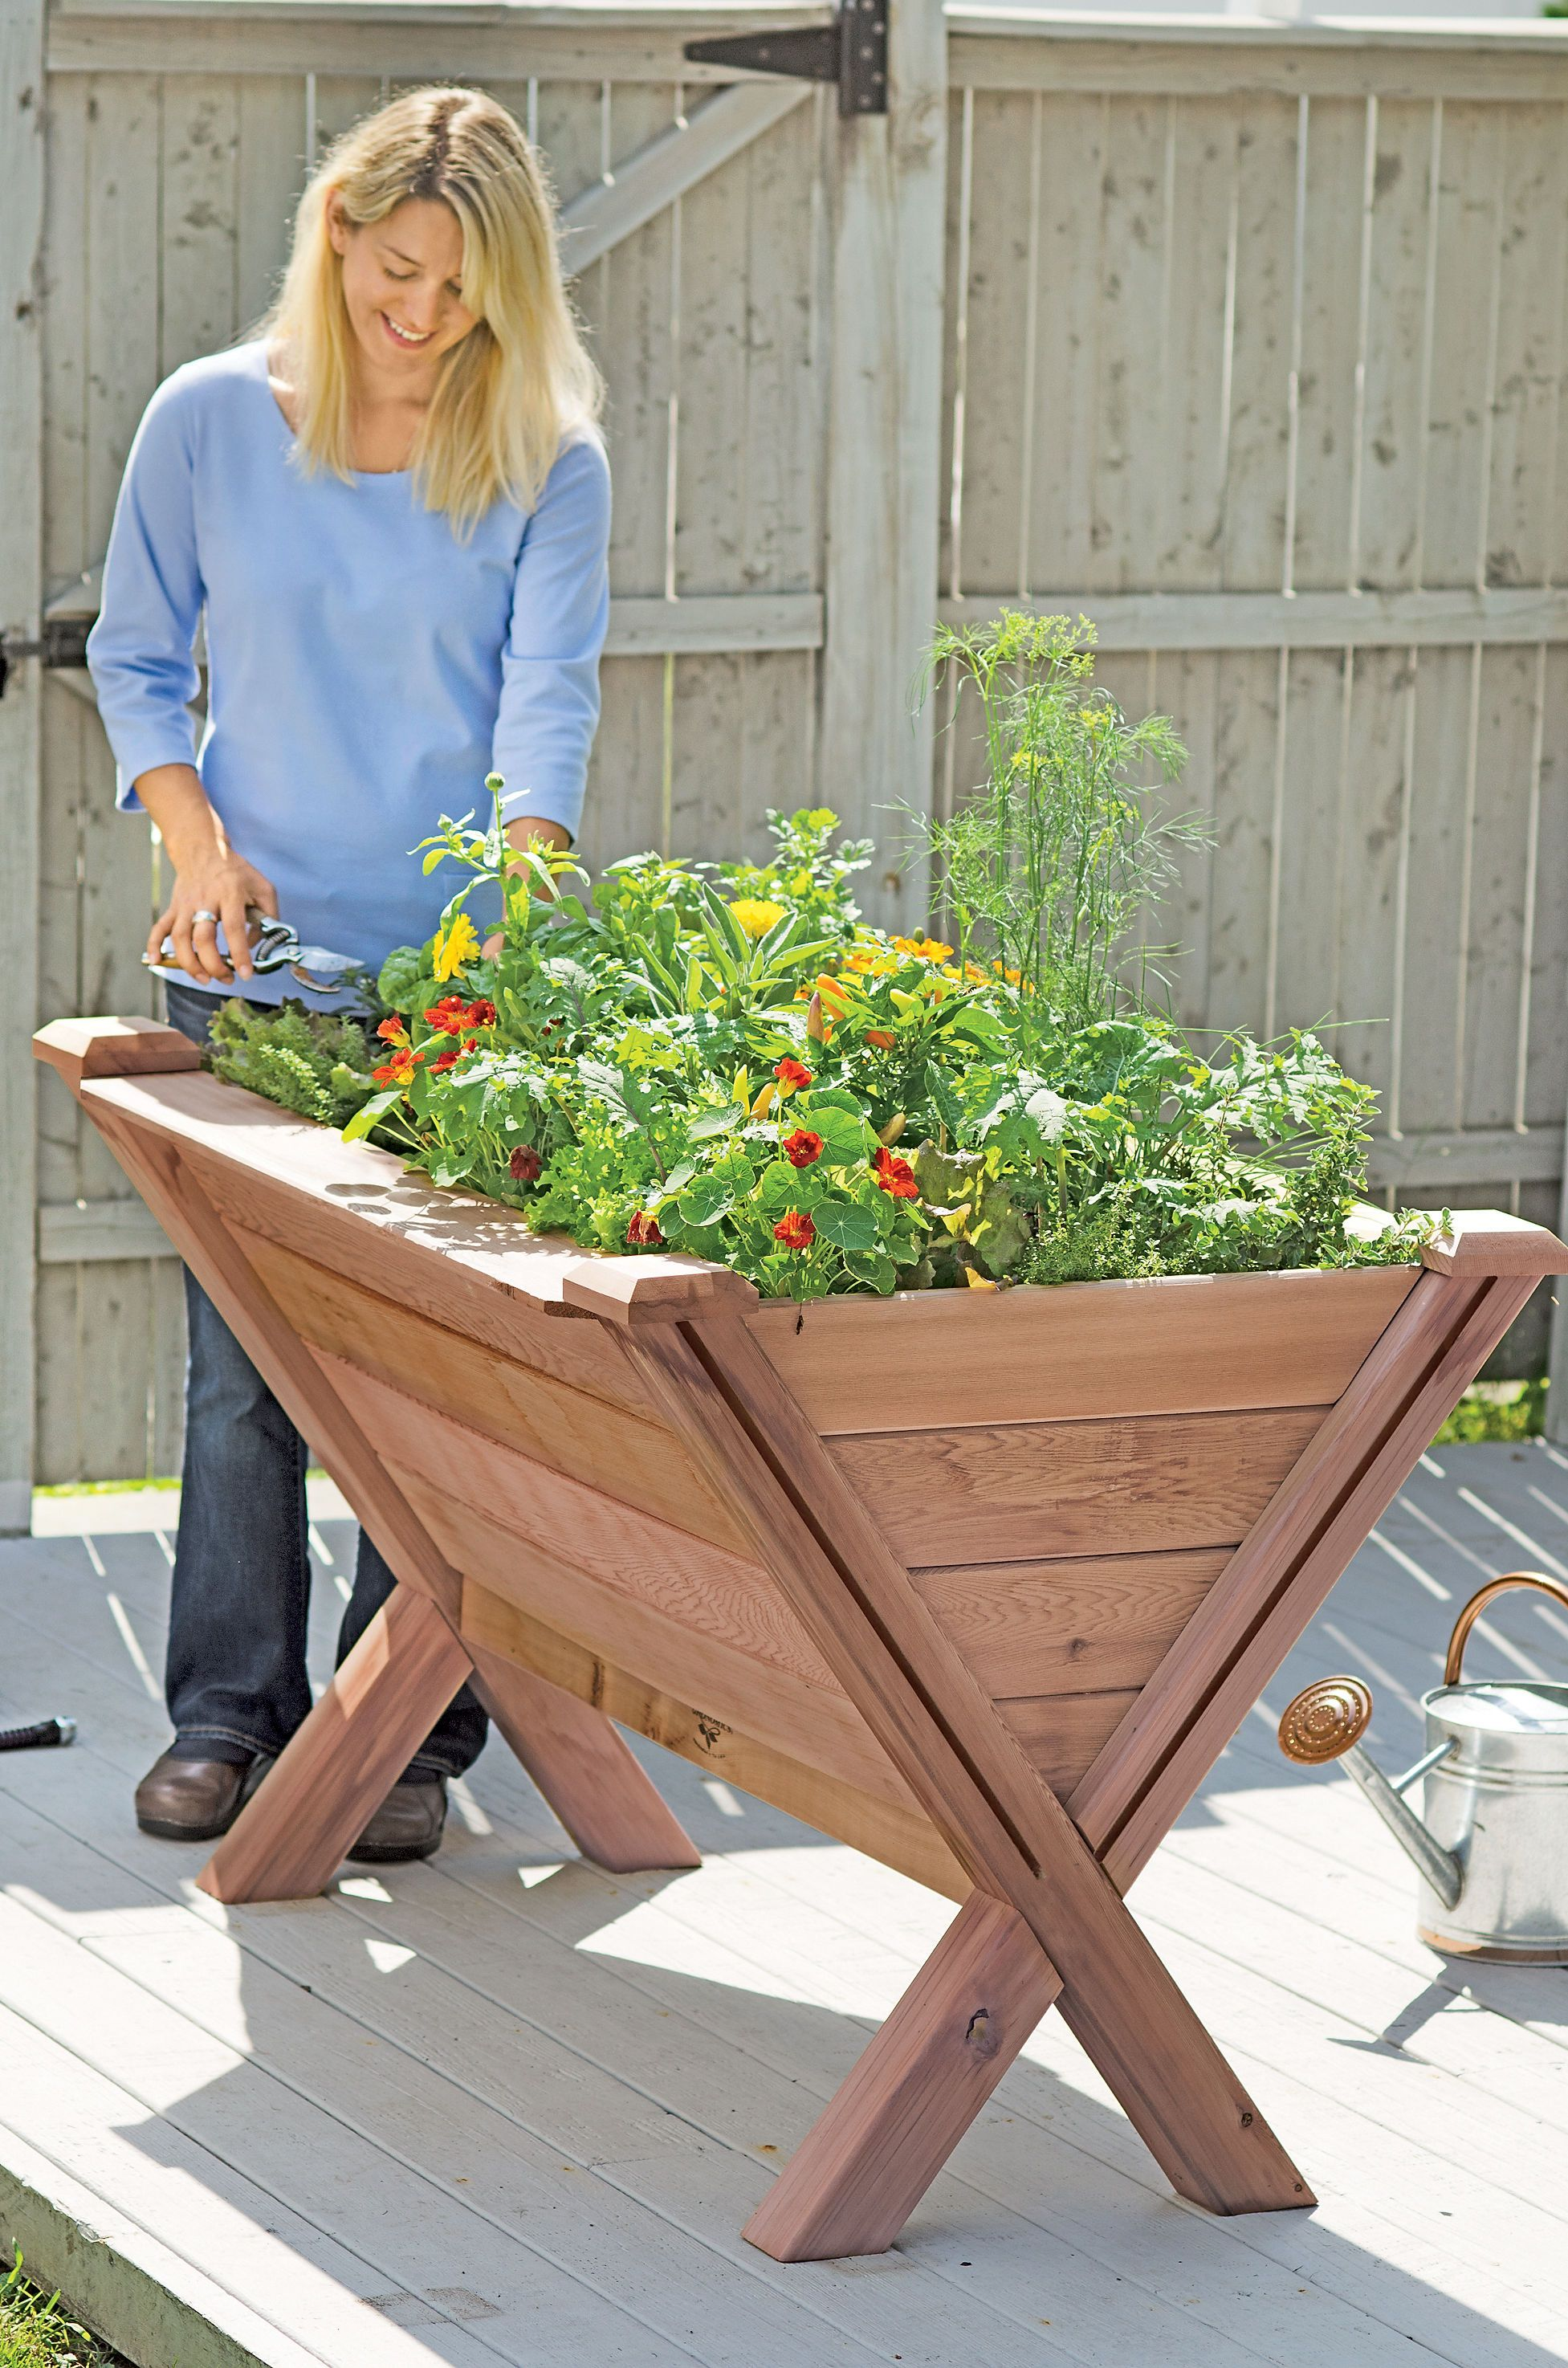 Garden Wedge   Elevated Bed For Apartment Gardening | Made In USA